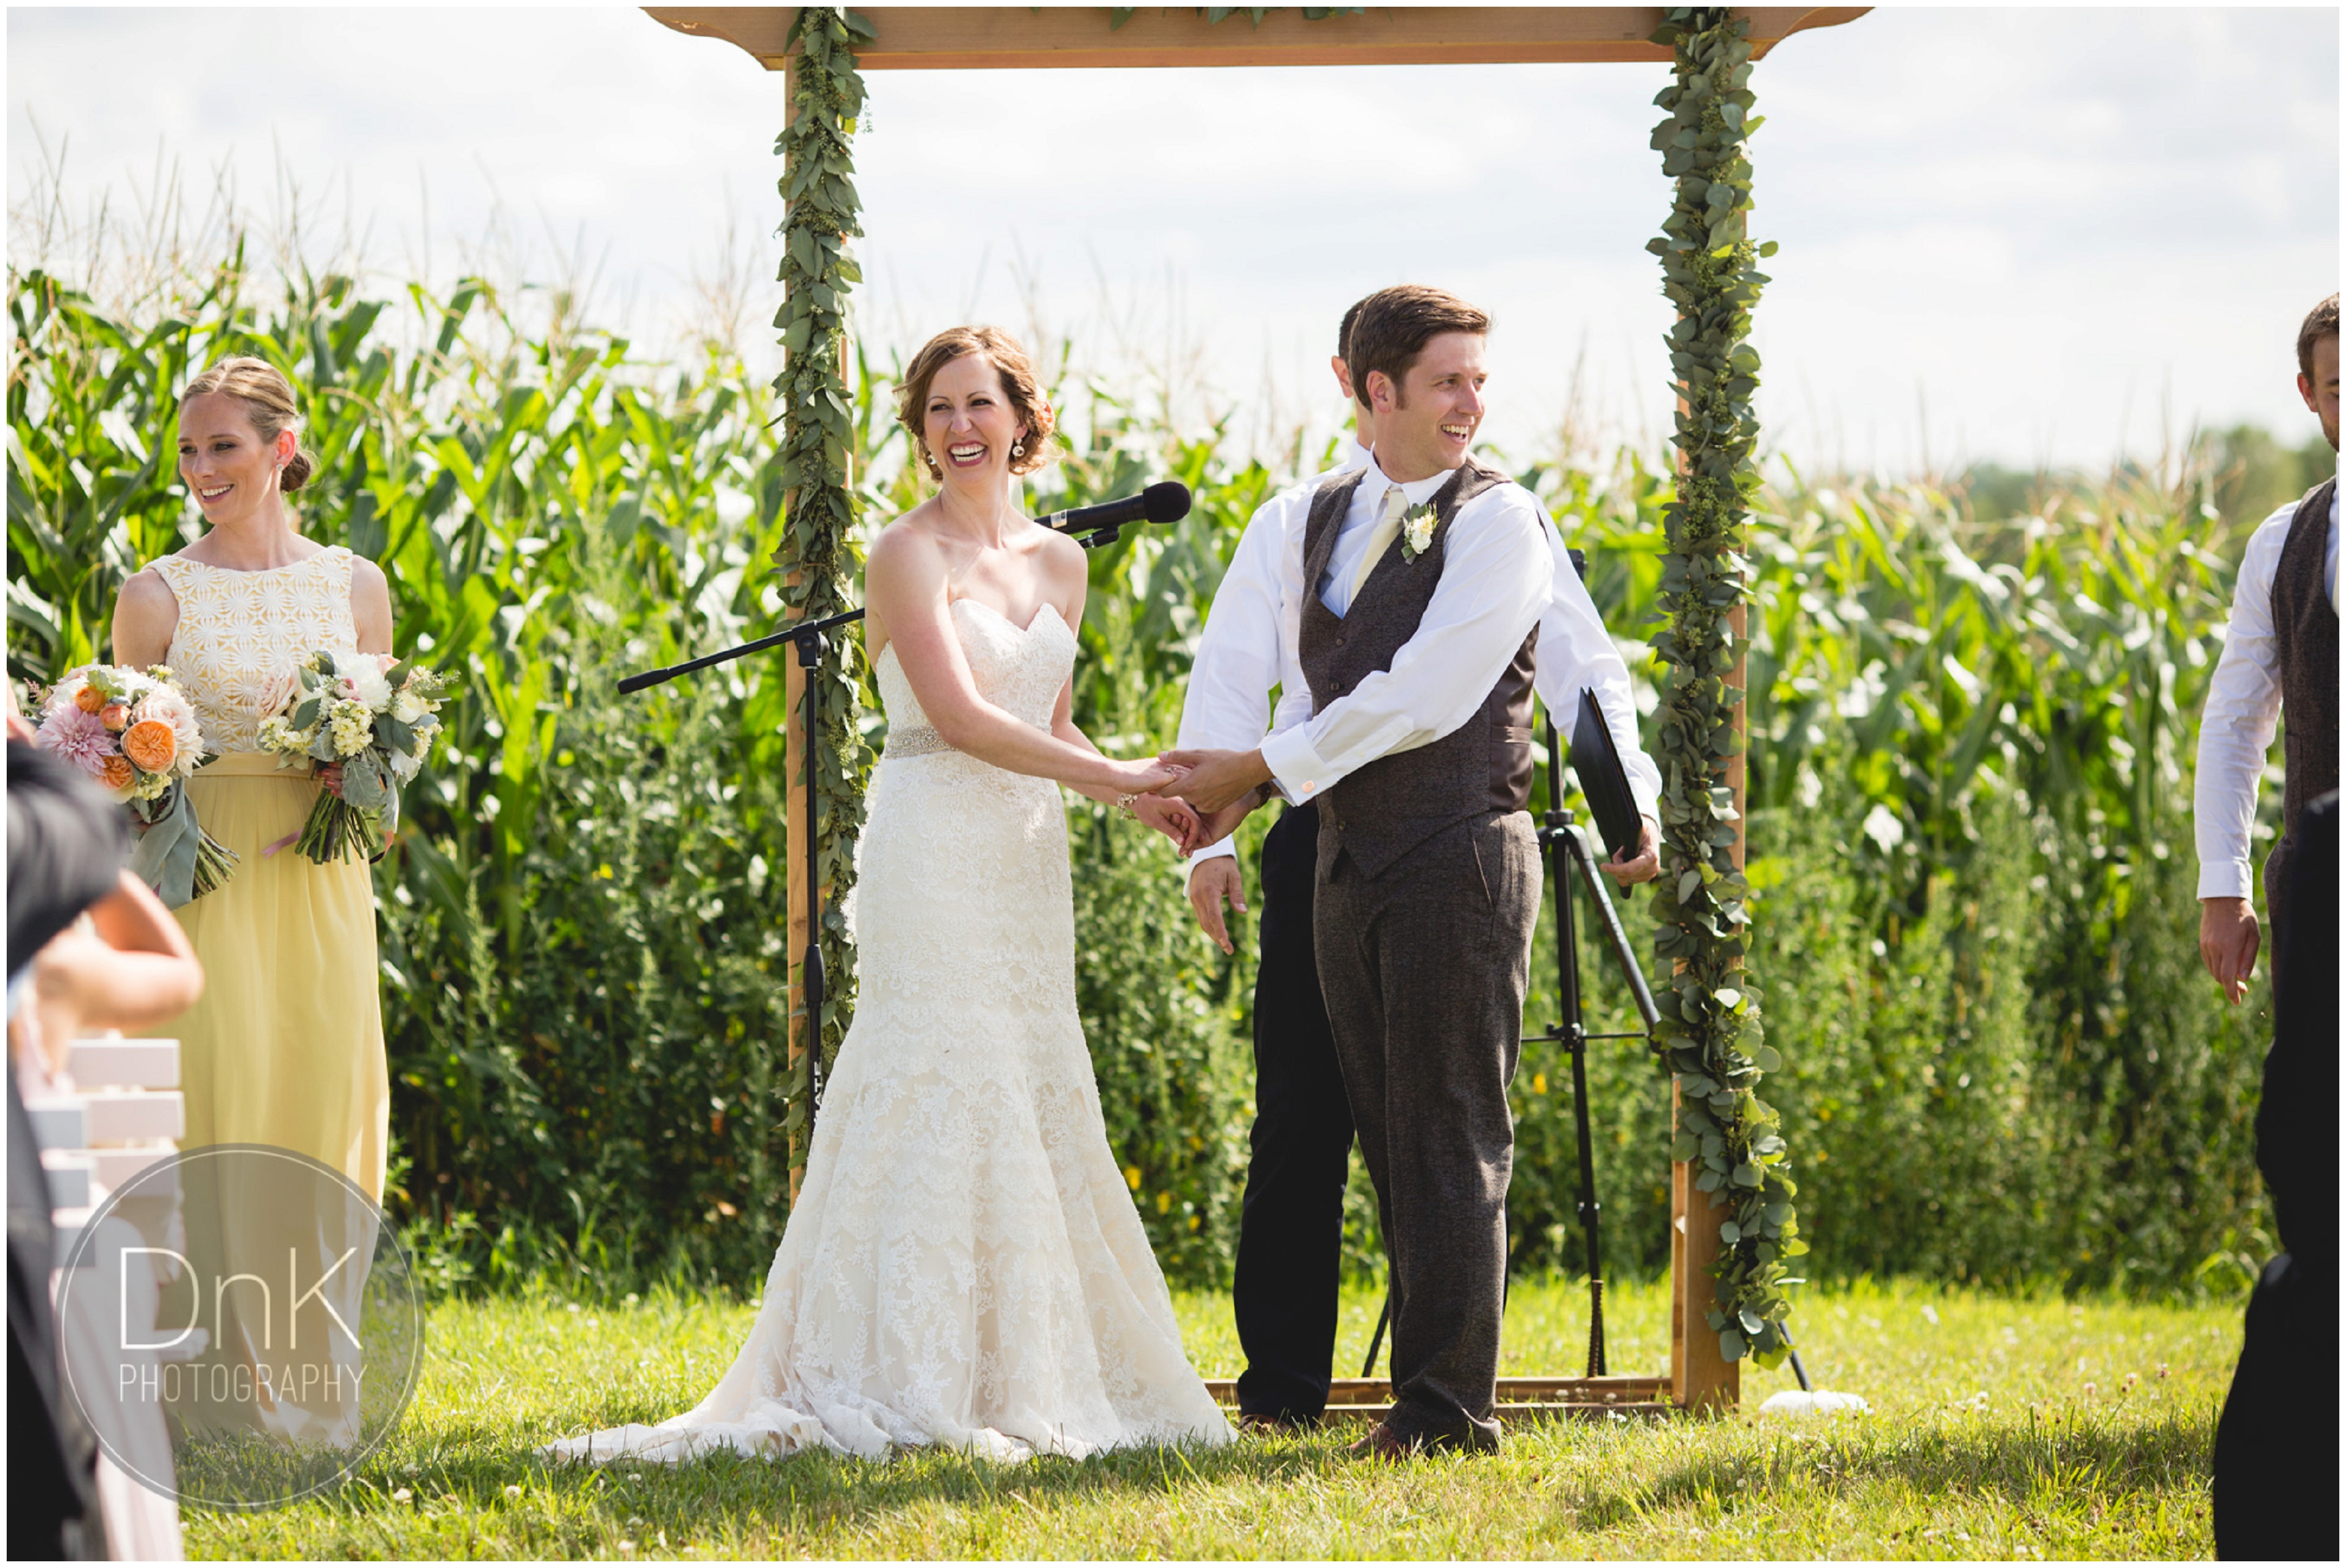 27 - Dellwood Barn Wedding Ceremony